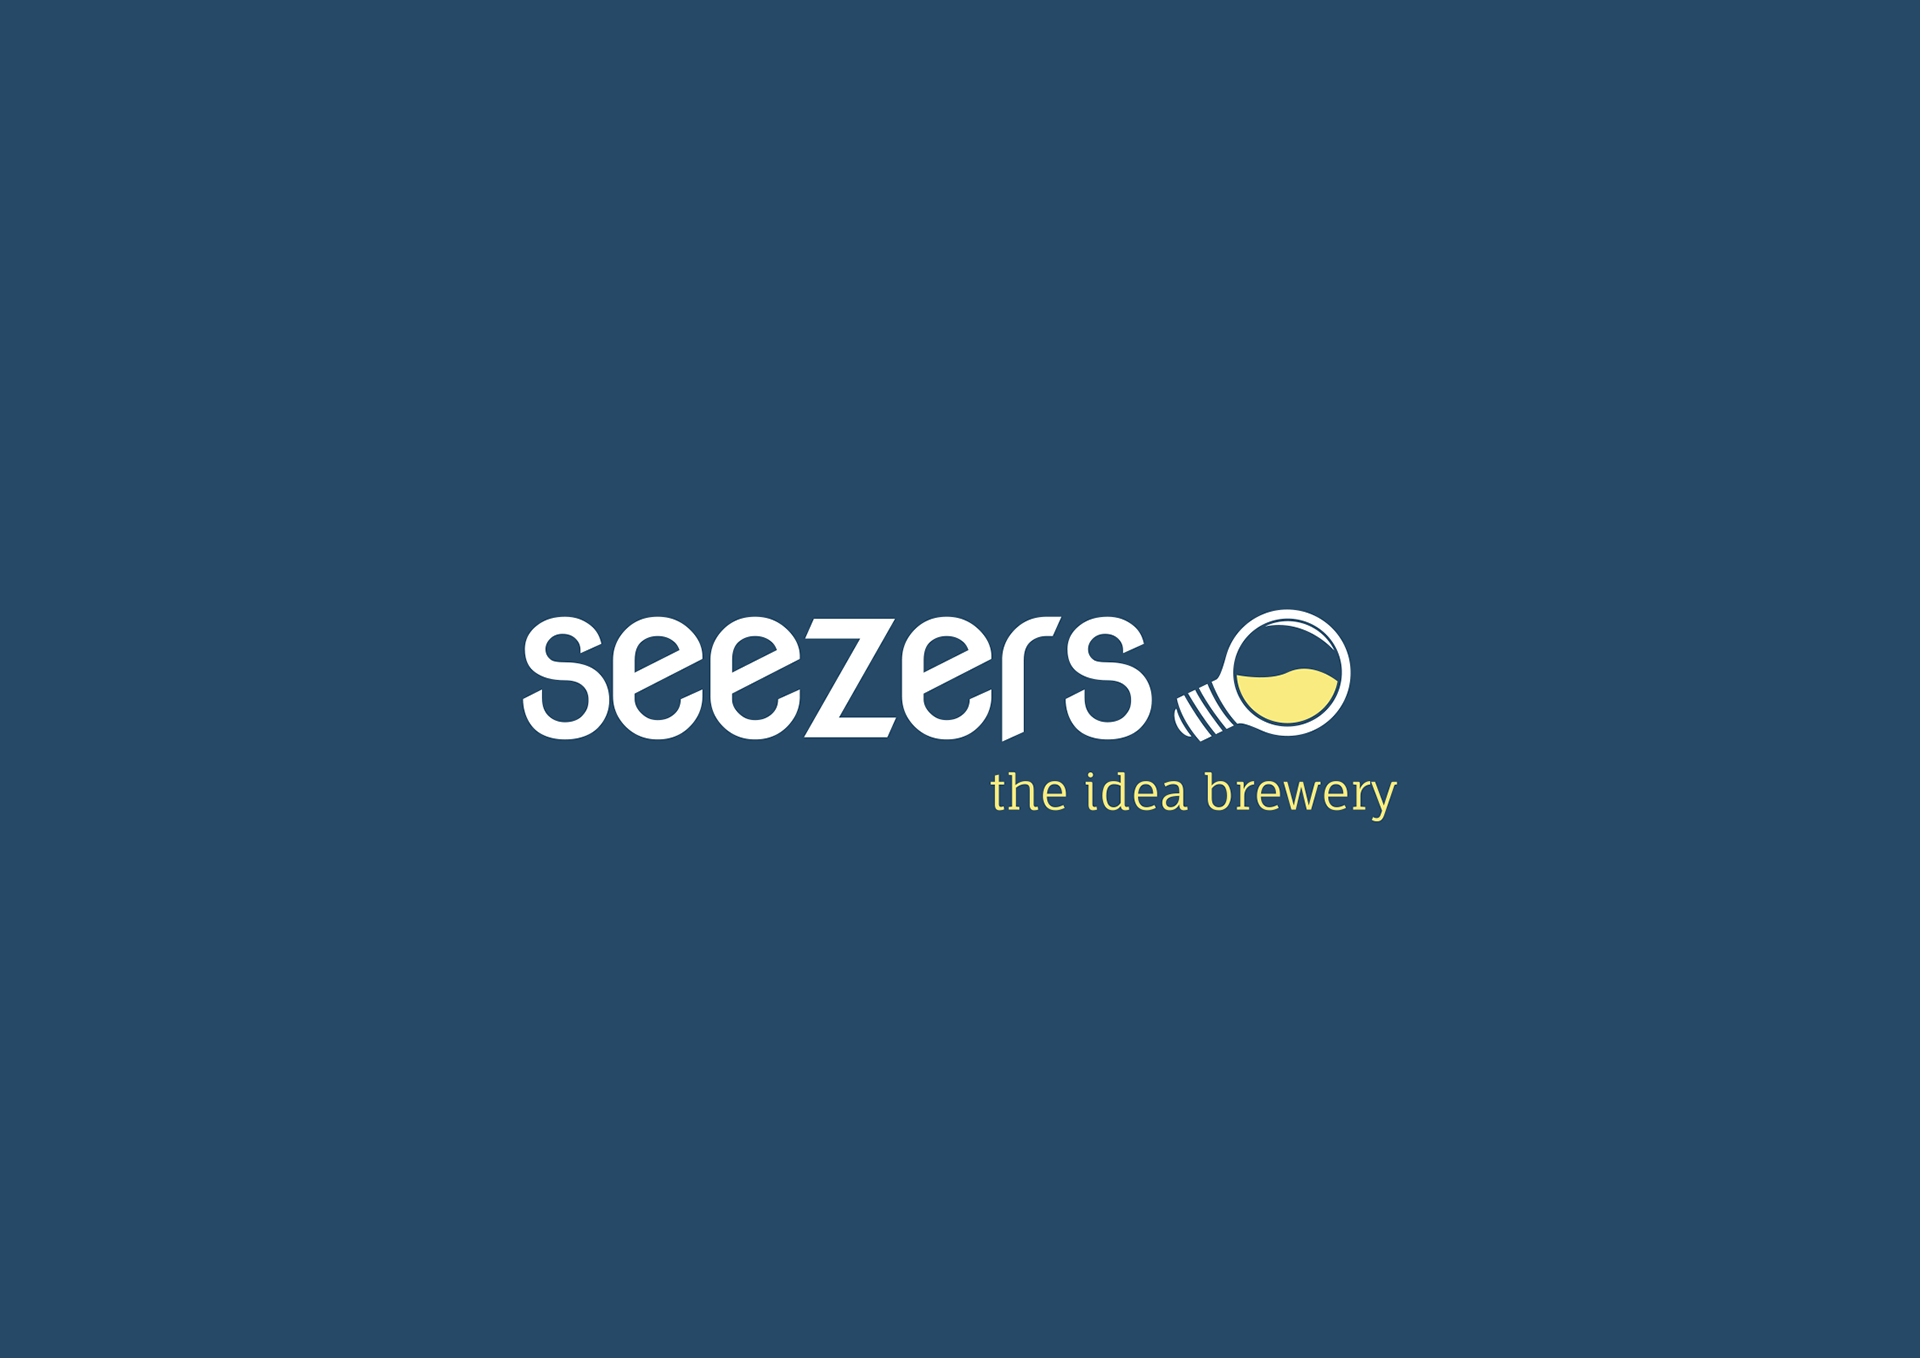 Seezers logo in white on blue